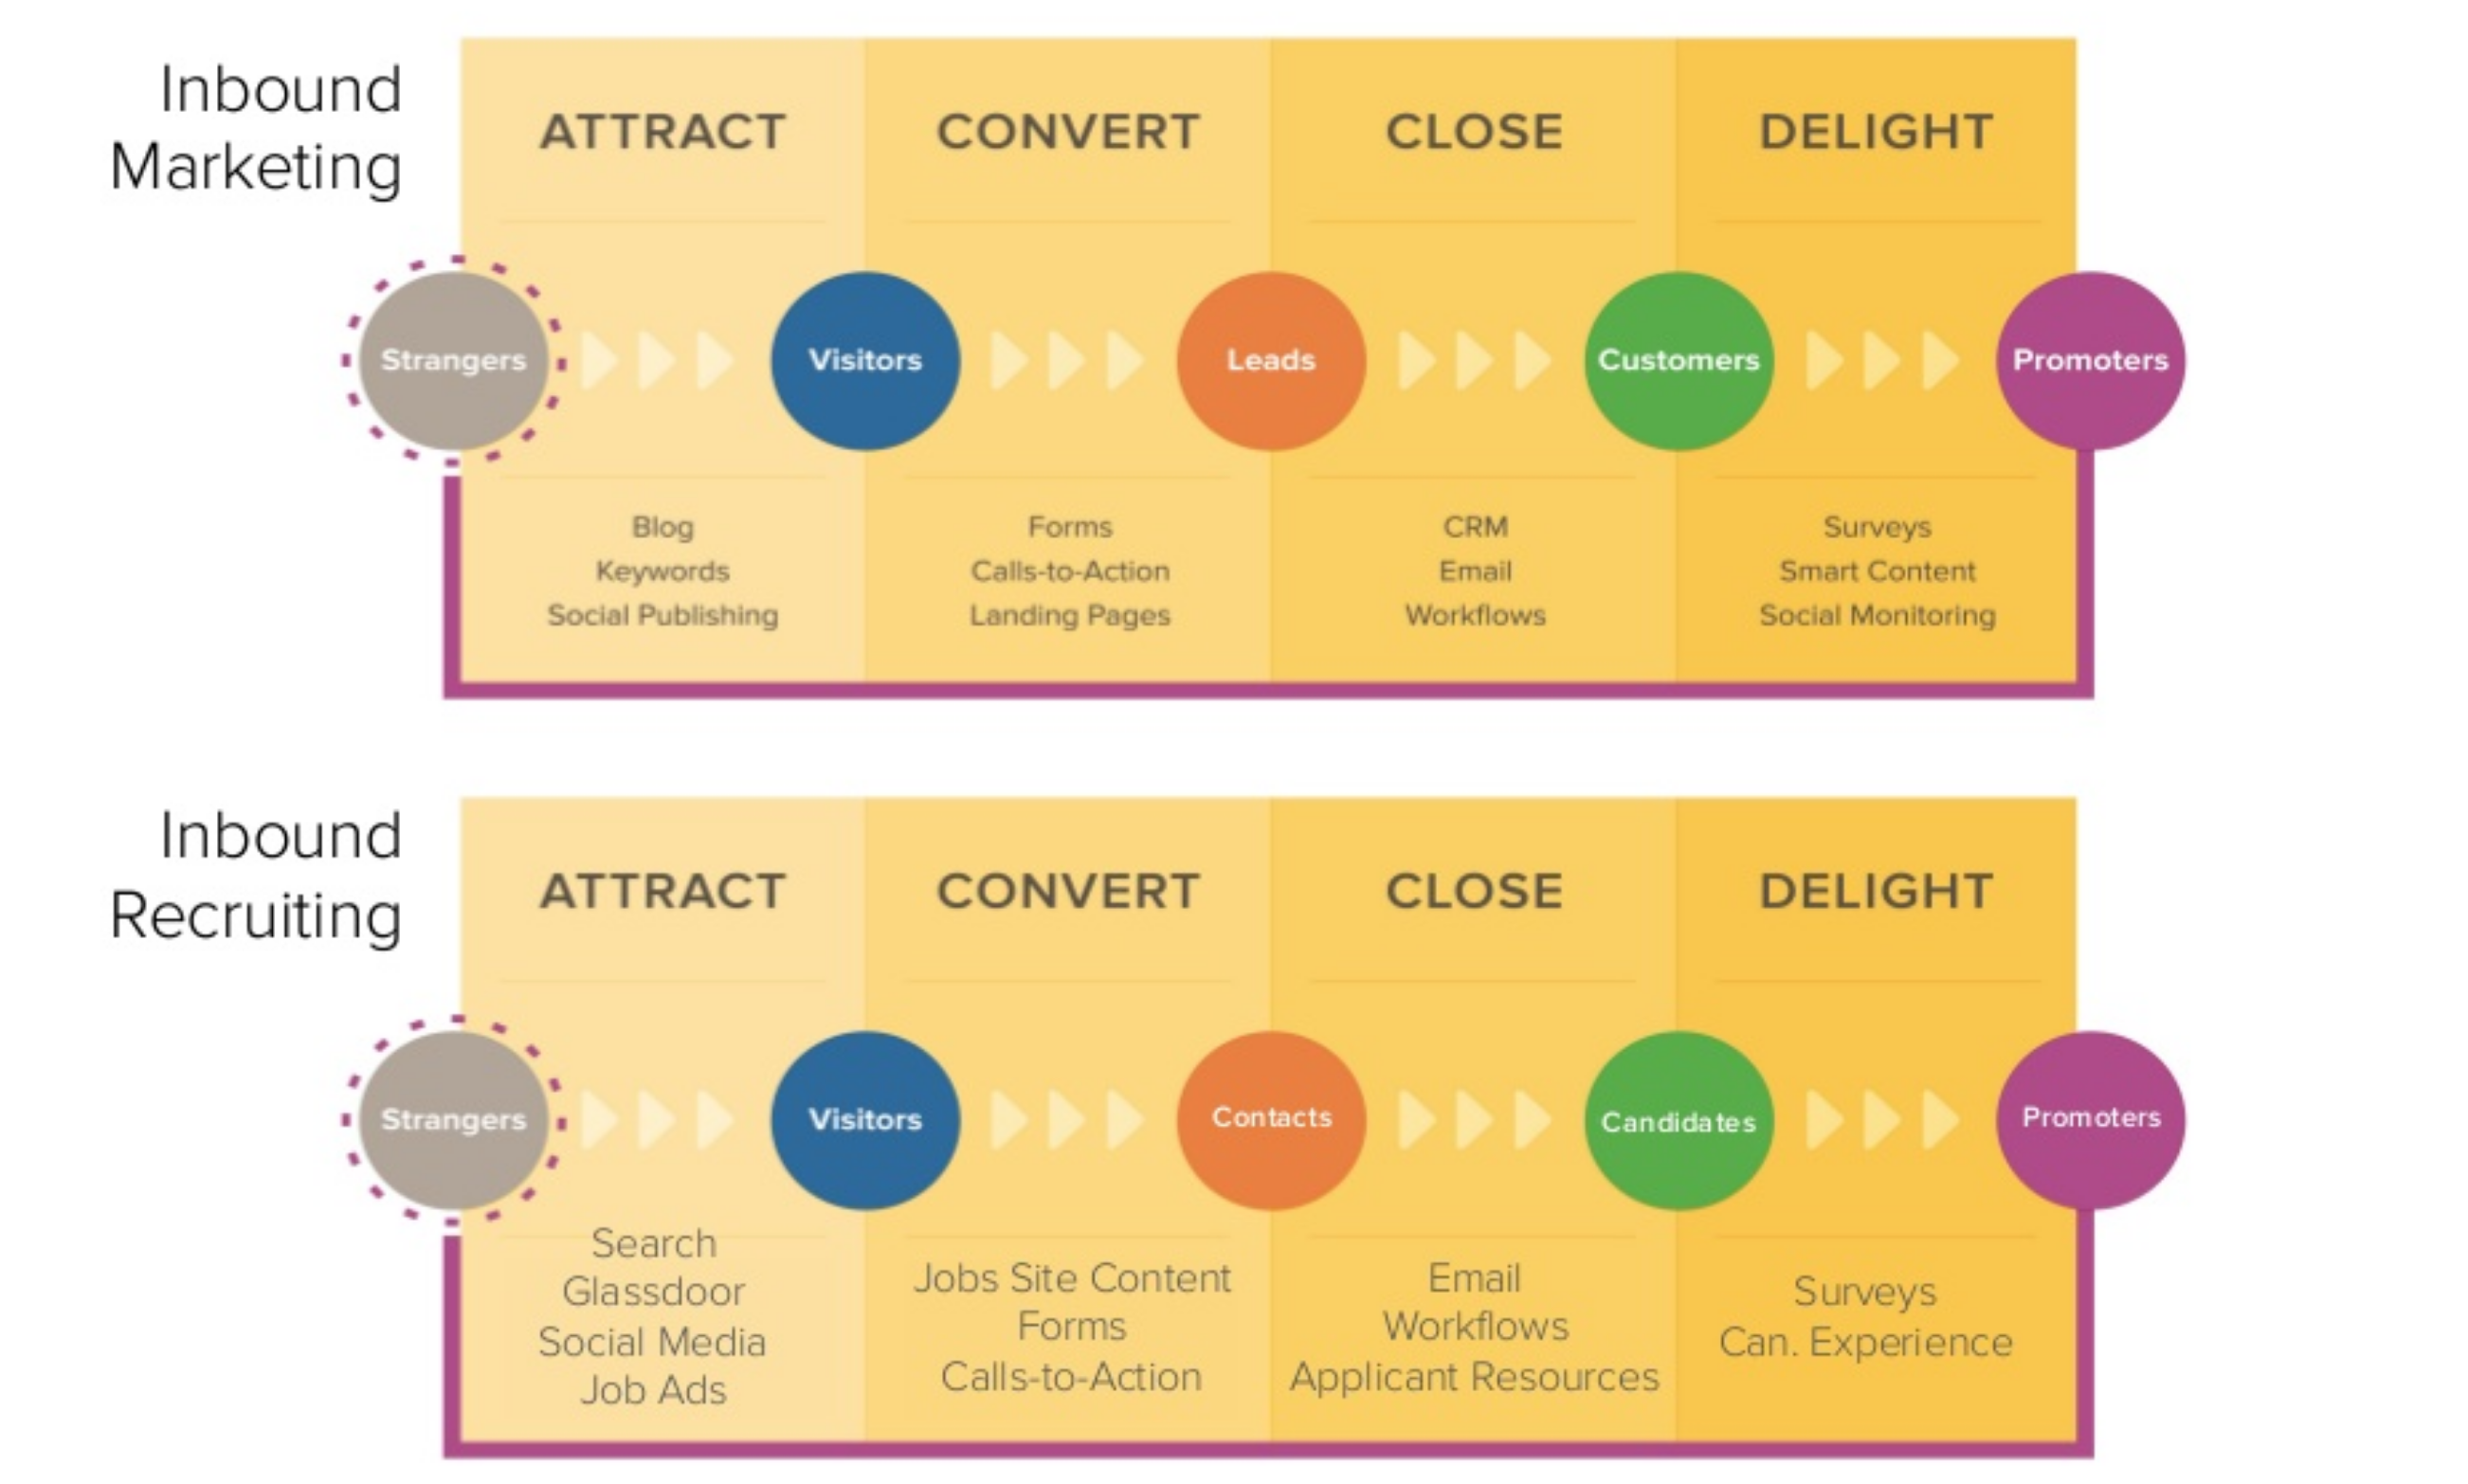 inbound-marketing-vs-inbound-recruiting.png